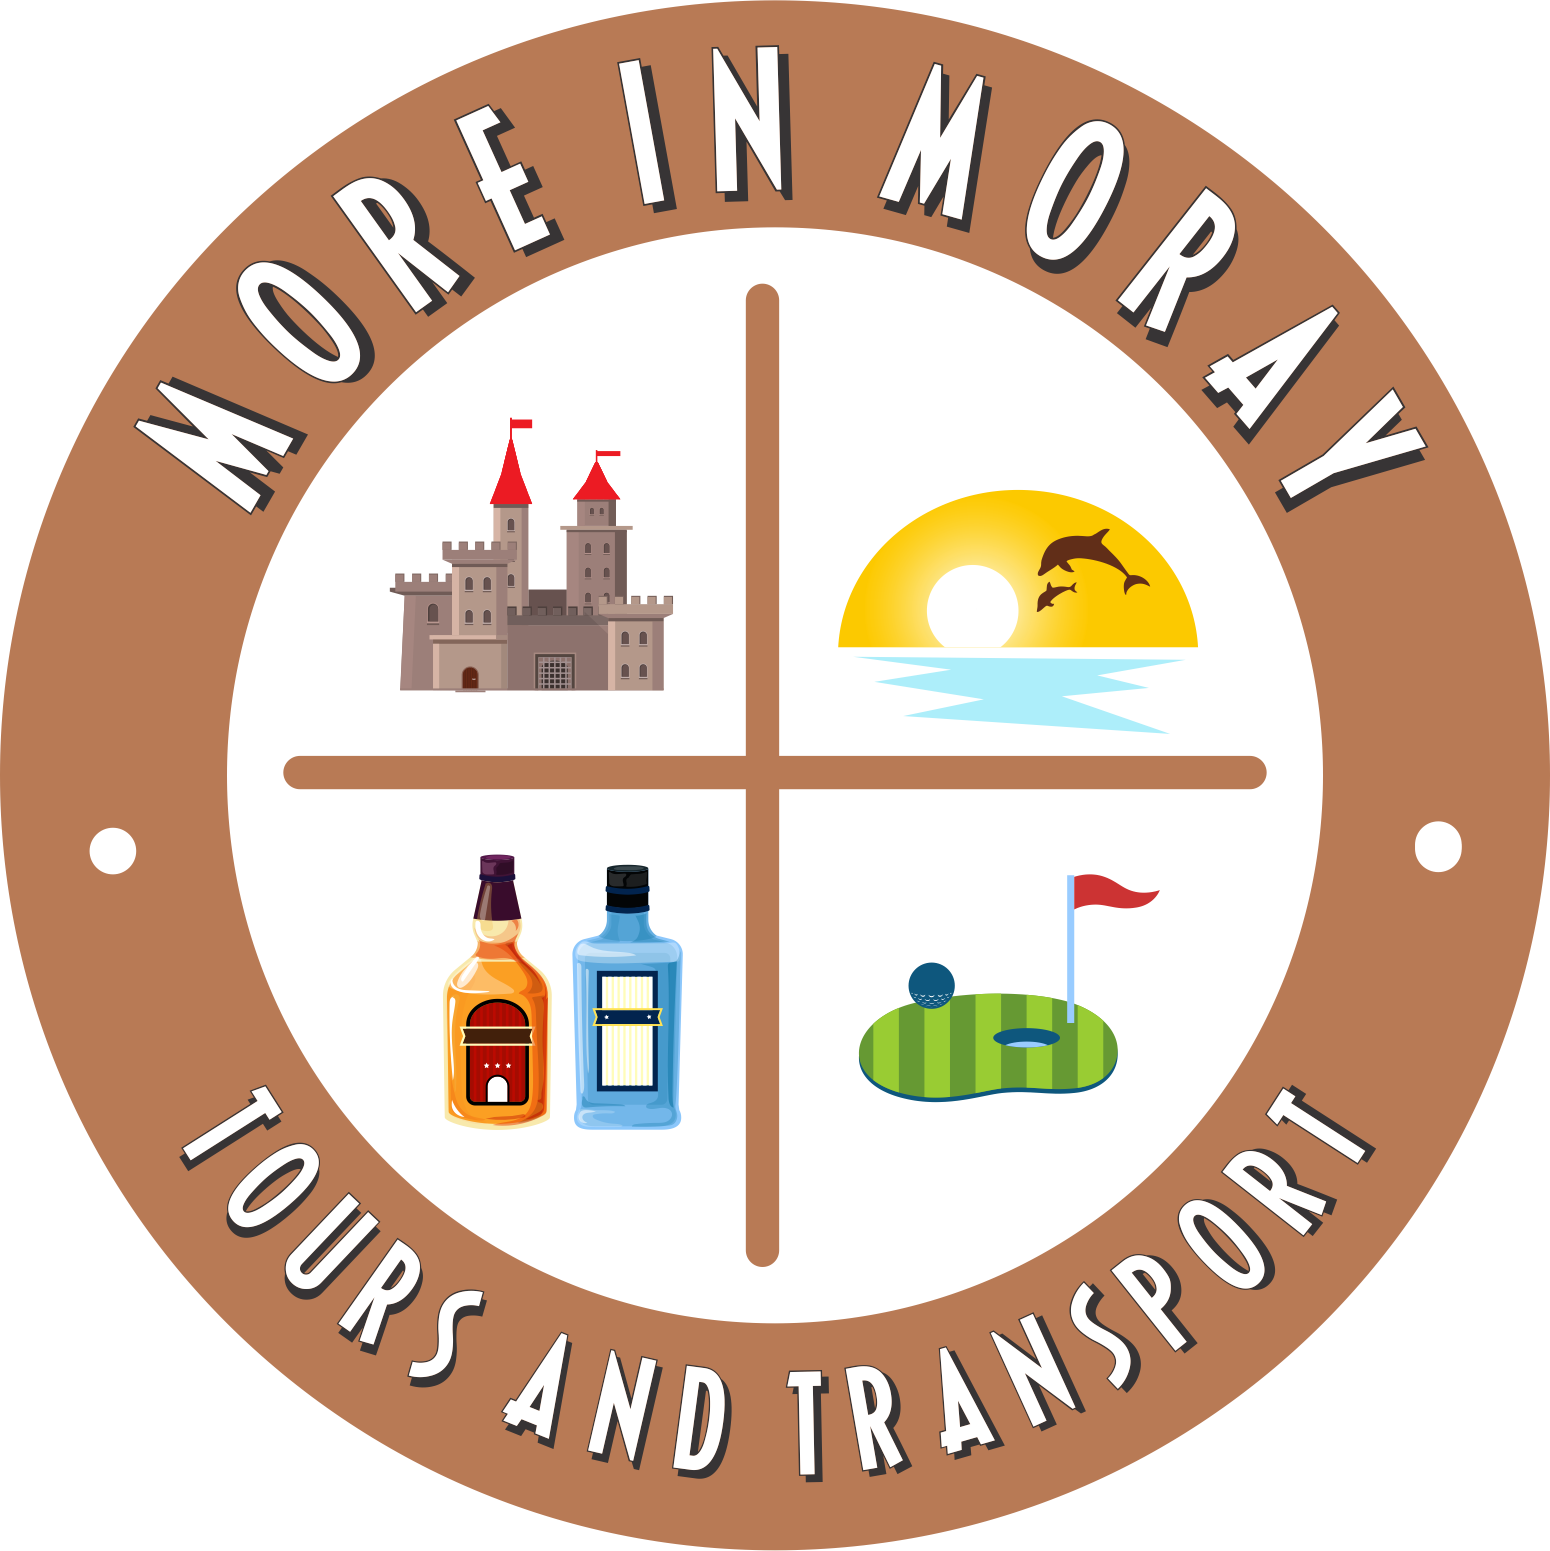 More in Moray Tours and Transport | Dark Skies - More in Moray Tours and Transport